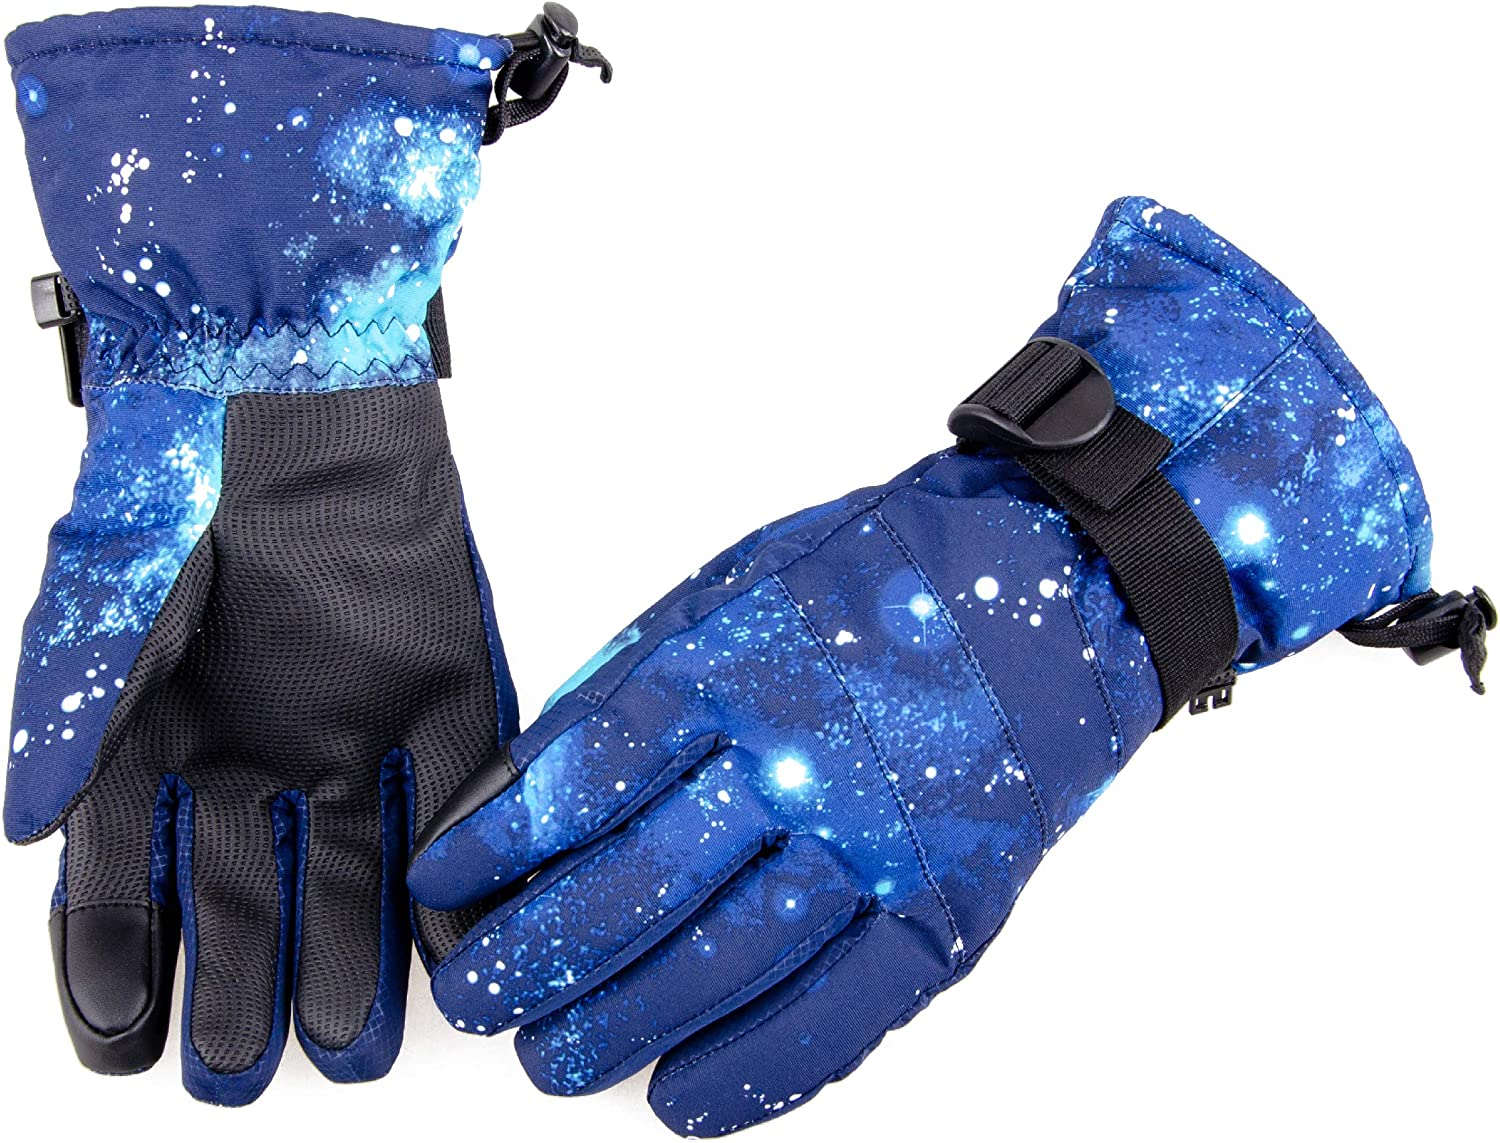 Azarxis Winter Running Gloves Warm Thermal Windproof Touch Screen Glove for Men & Women Driving Cycling Riding Outdoor Sports